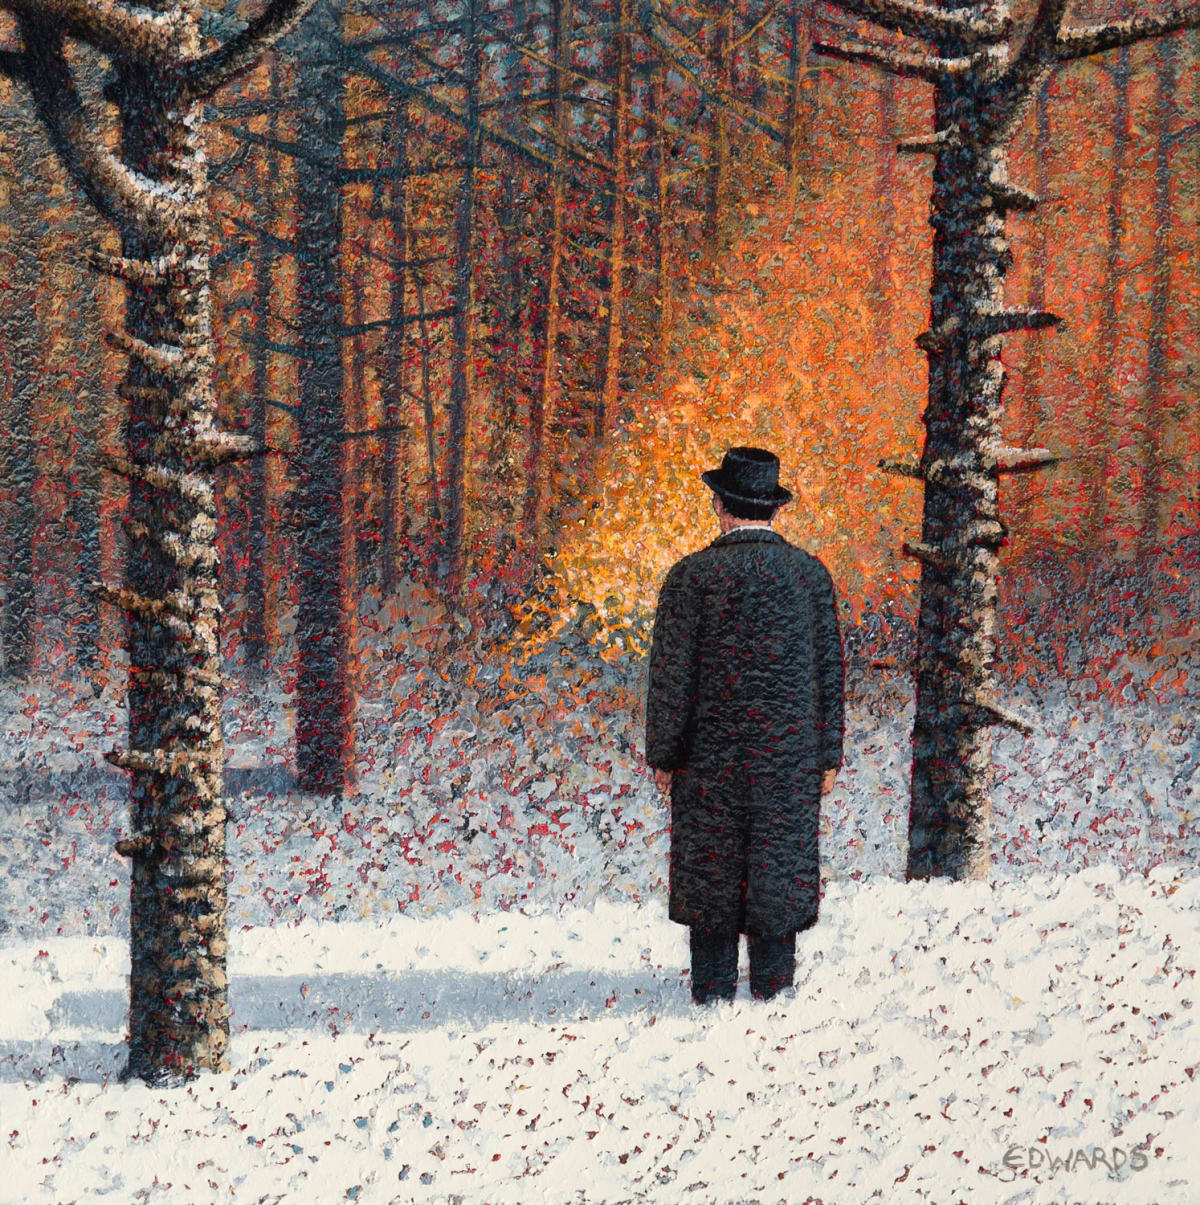 Mark Edwards | Master of Suspense, Watching the fire June 2020